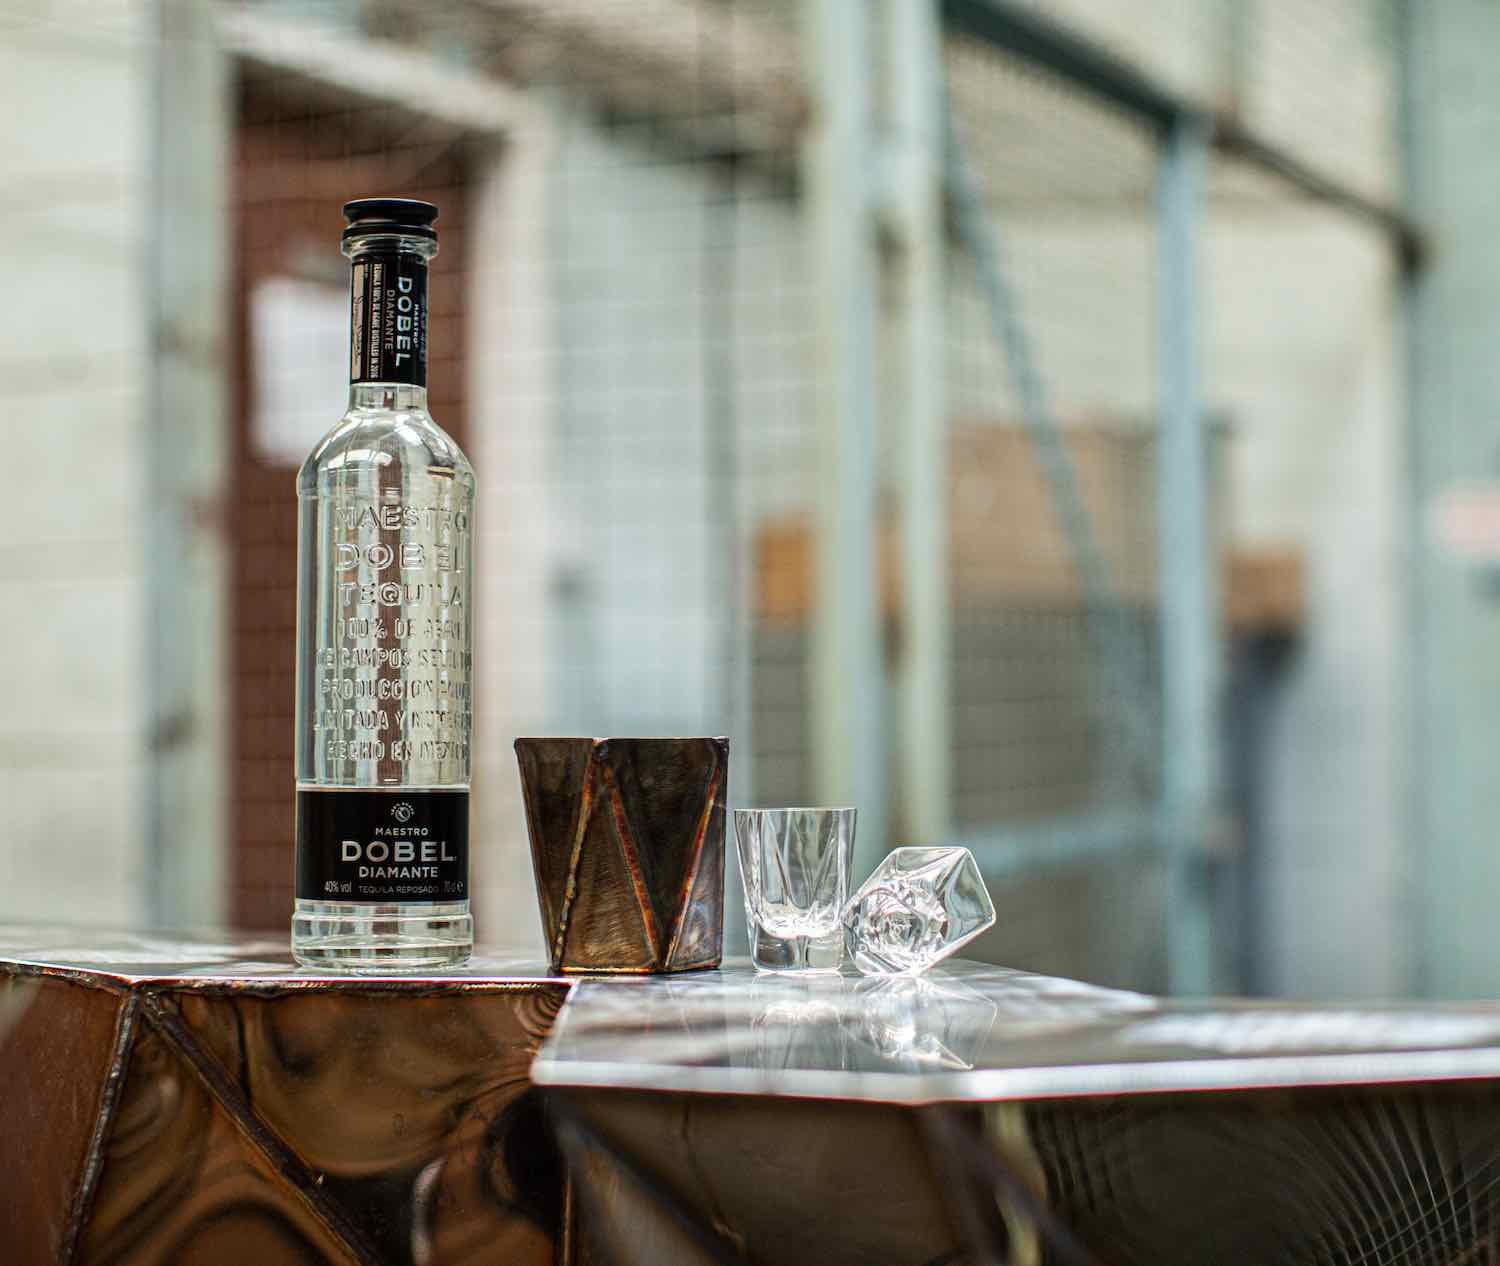 Agave-inspired handcrafted steel cup & glass by Julian Mayor x Maestro DOBEL Tequila - Courtesy of Maestro DOBEL Tequila